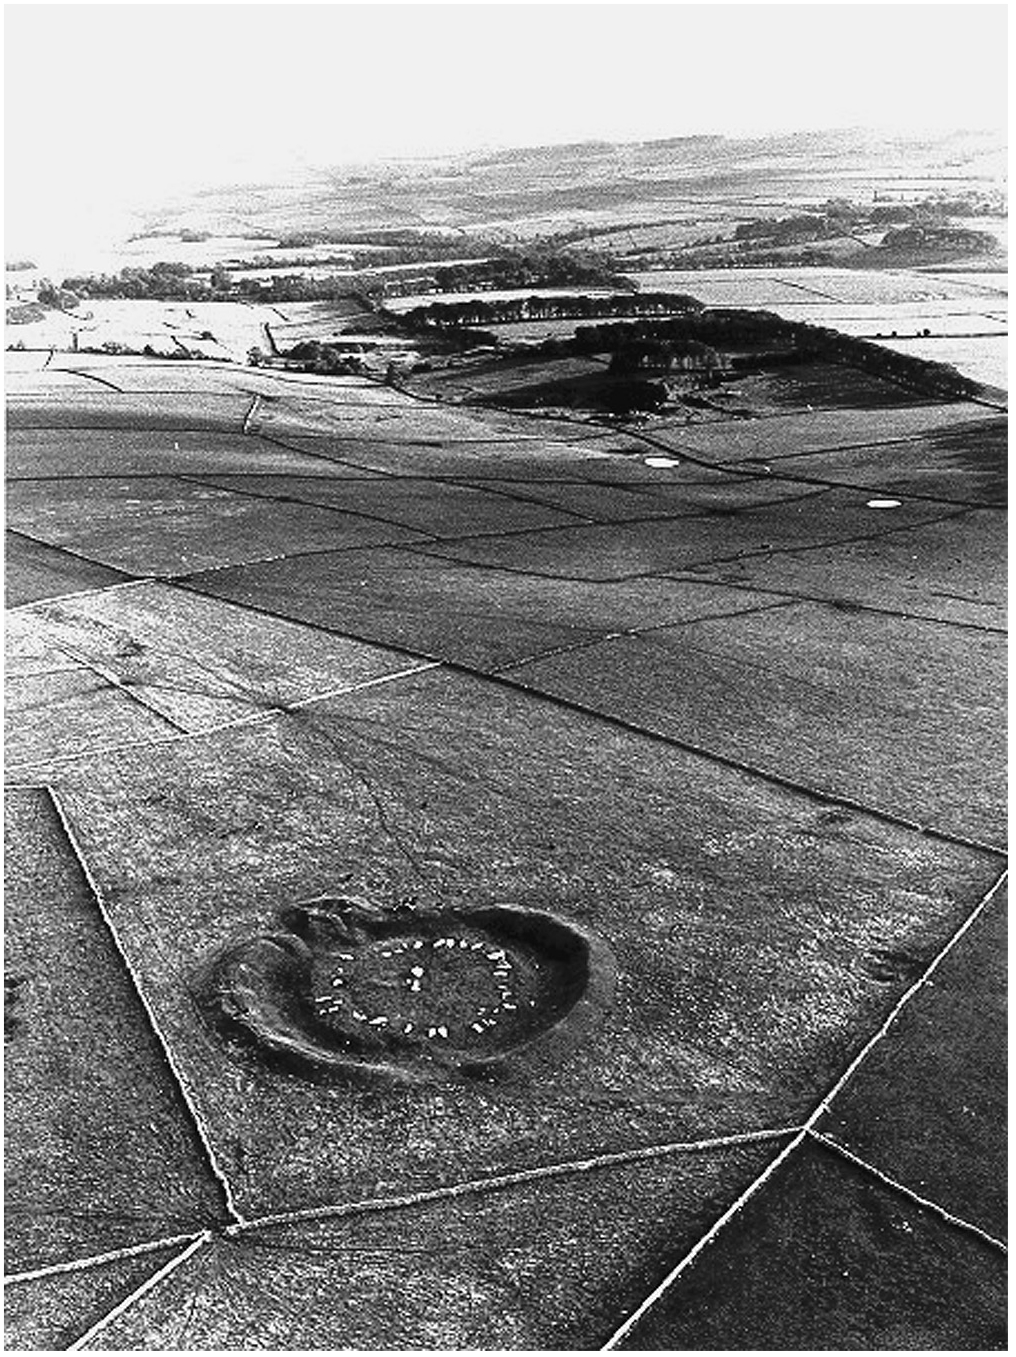 An aerial photo showing a large circular earthwork amongst fields. There is a ring of stones in the centre of the earthwork. In the distance hills and woodlands can be seen.